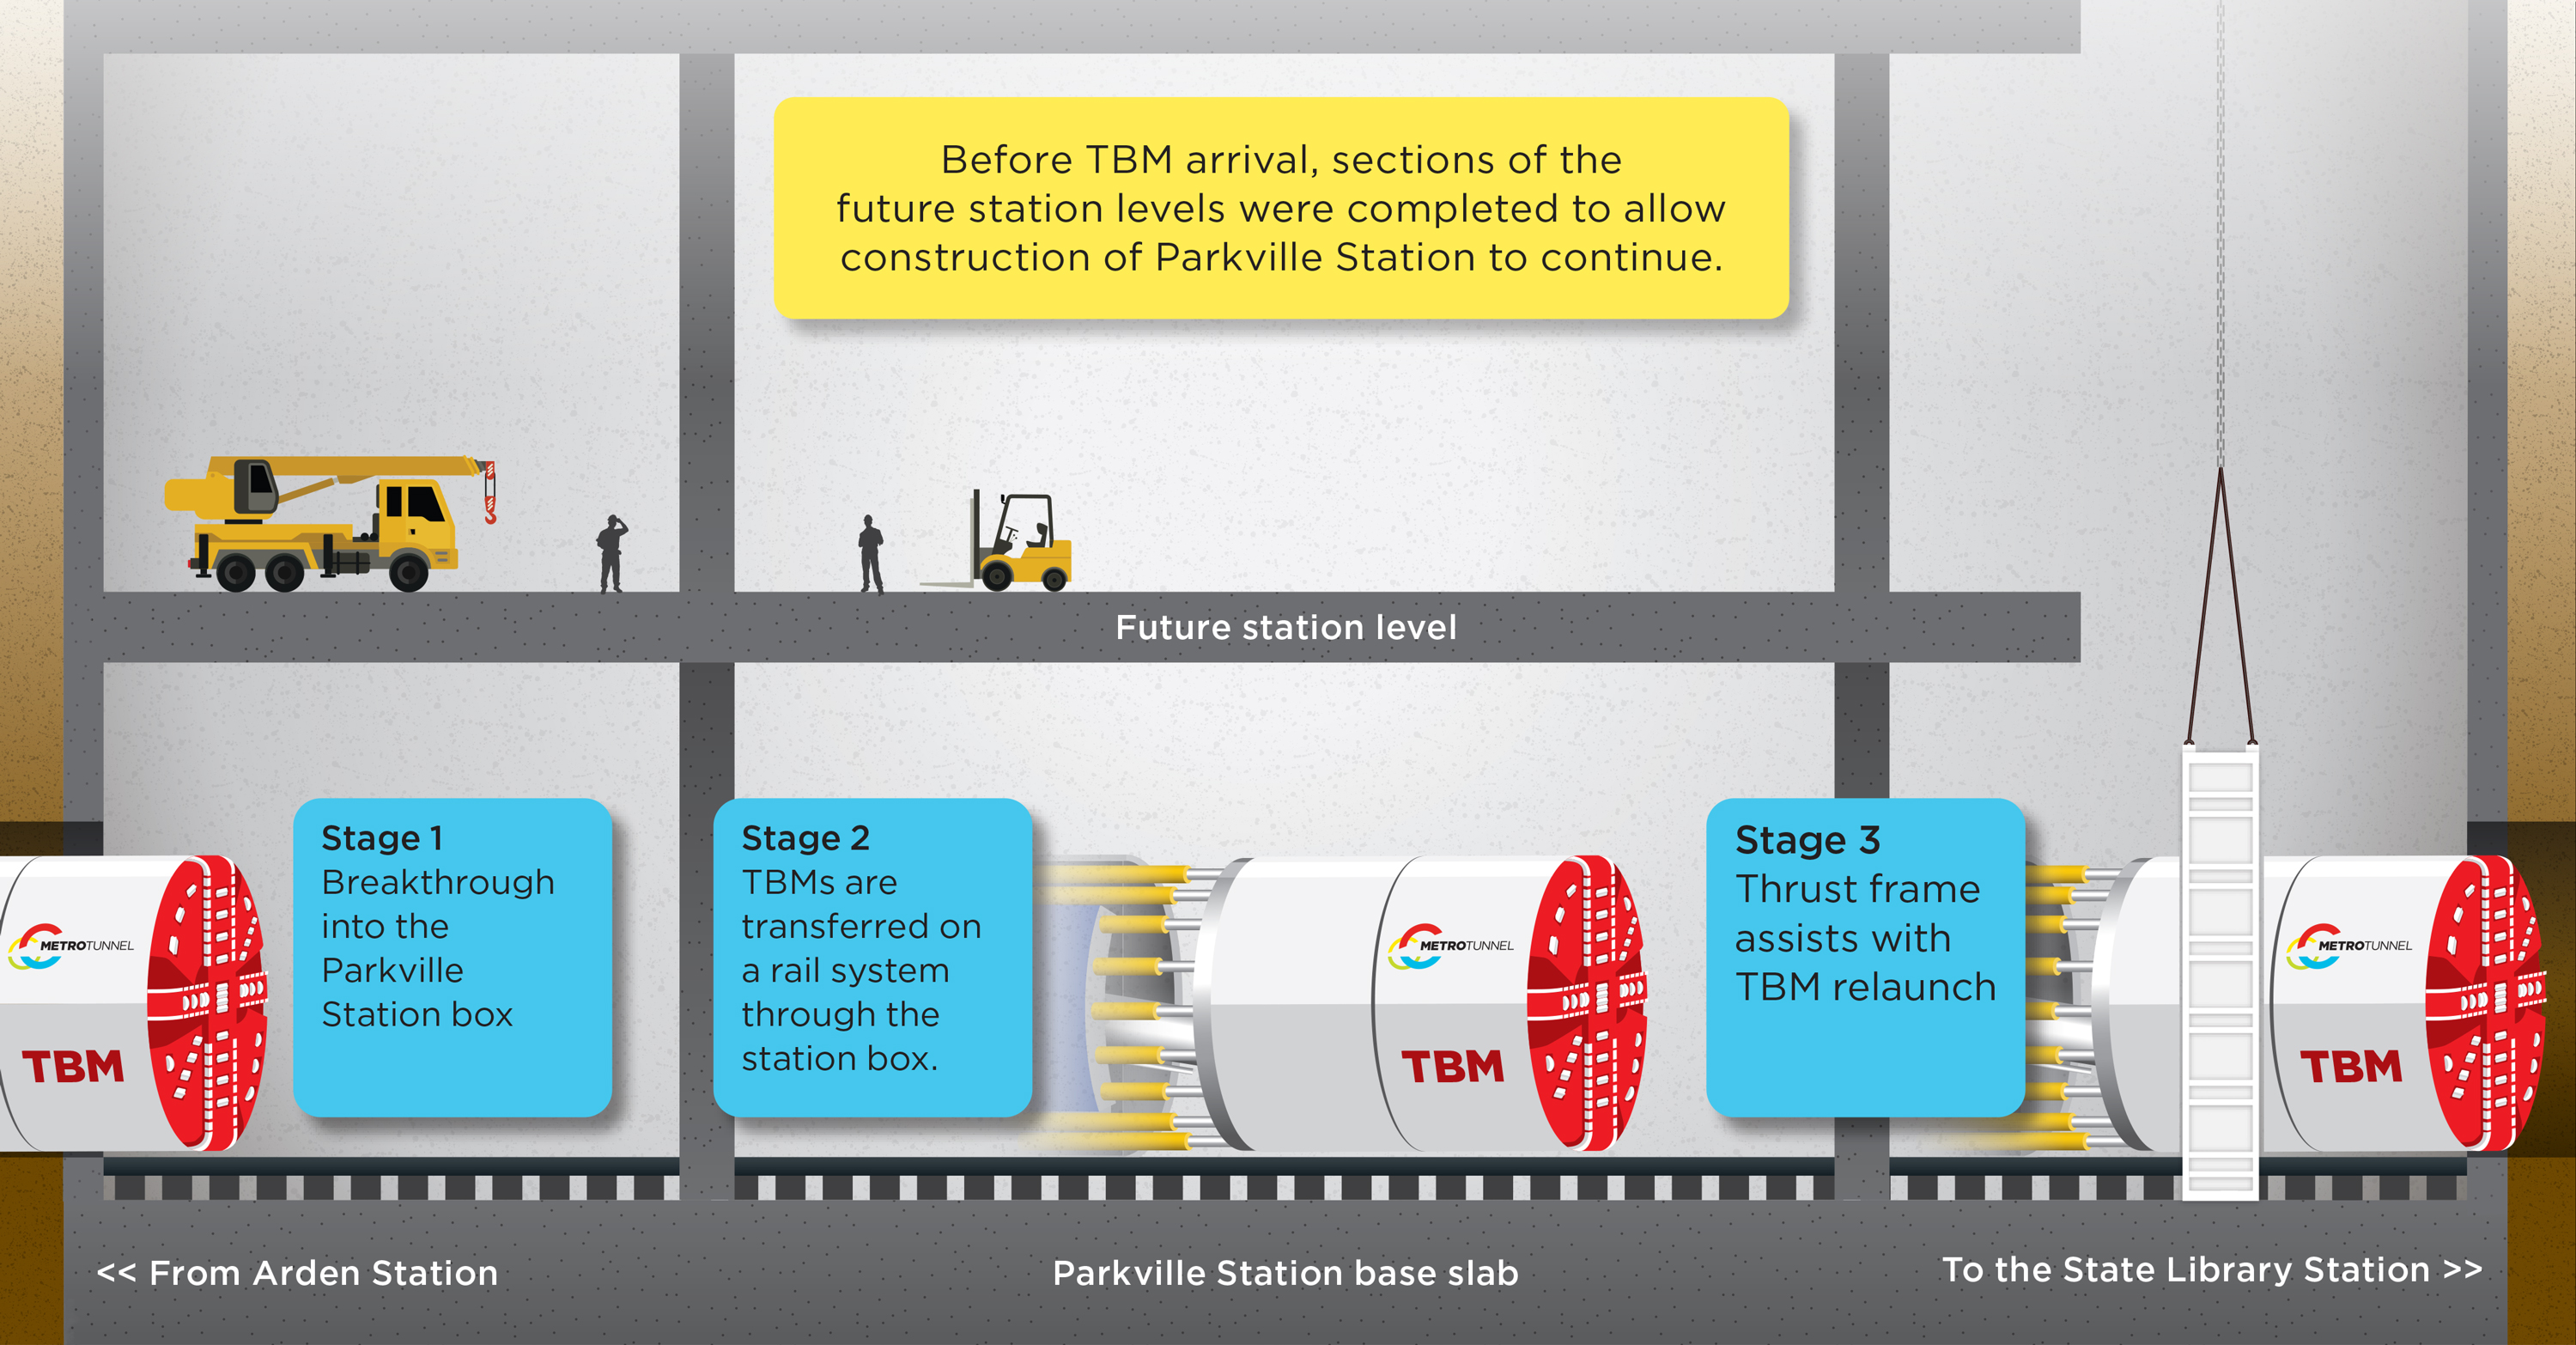 Artist's impression showing a tunnel boring machine breaking through into the Parkville Station box from Arden Station, before being transferred across a rail system then relaunched through a thrust frame towards State Library Station.